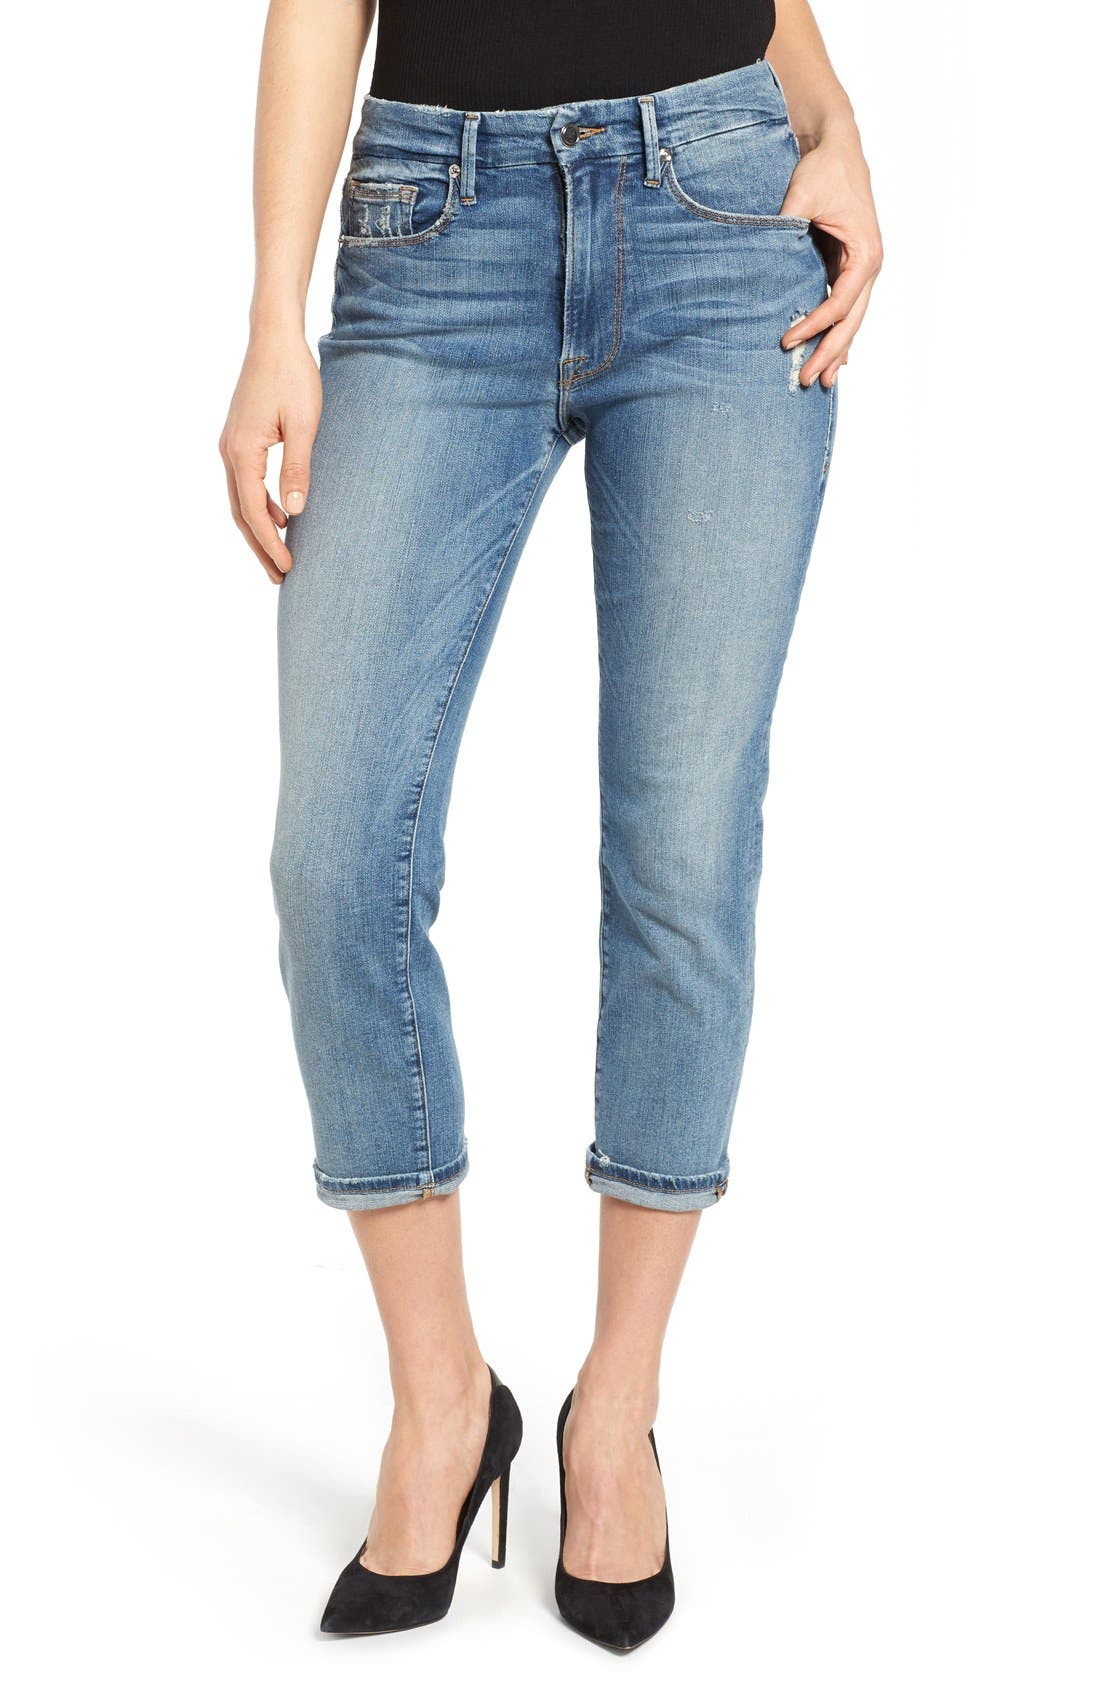 Main Image - Good American Good Cuts High Rise Boyfriend Jeans (Blue 012) (Extended Sizes)